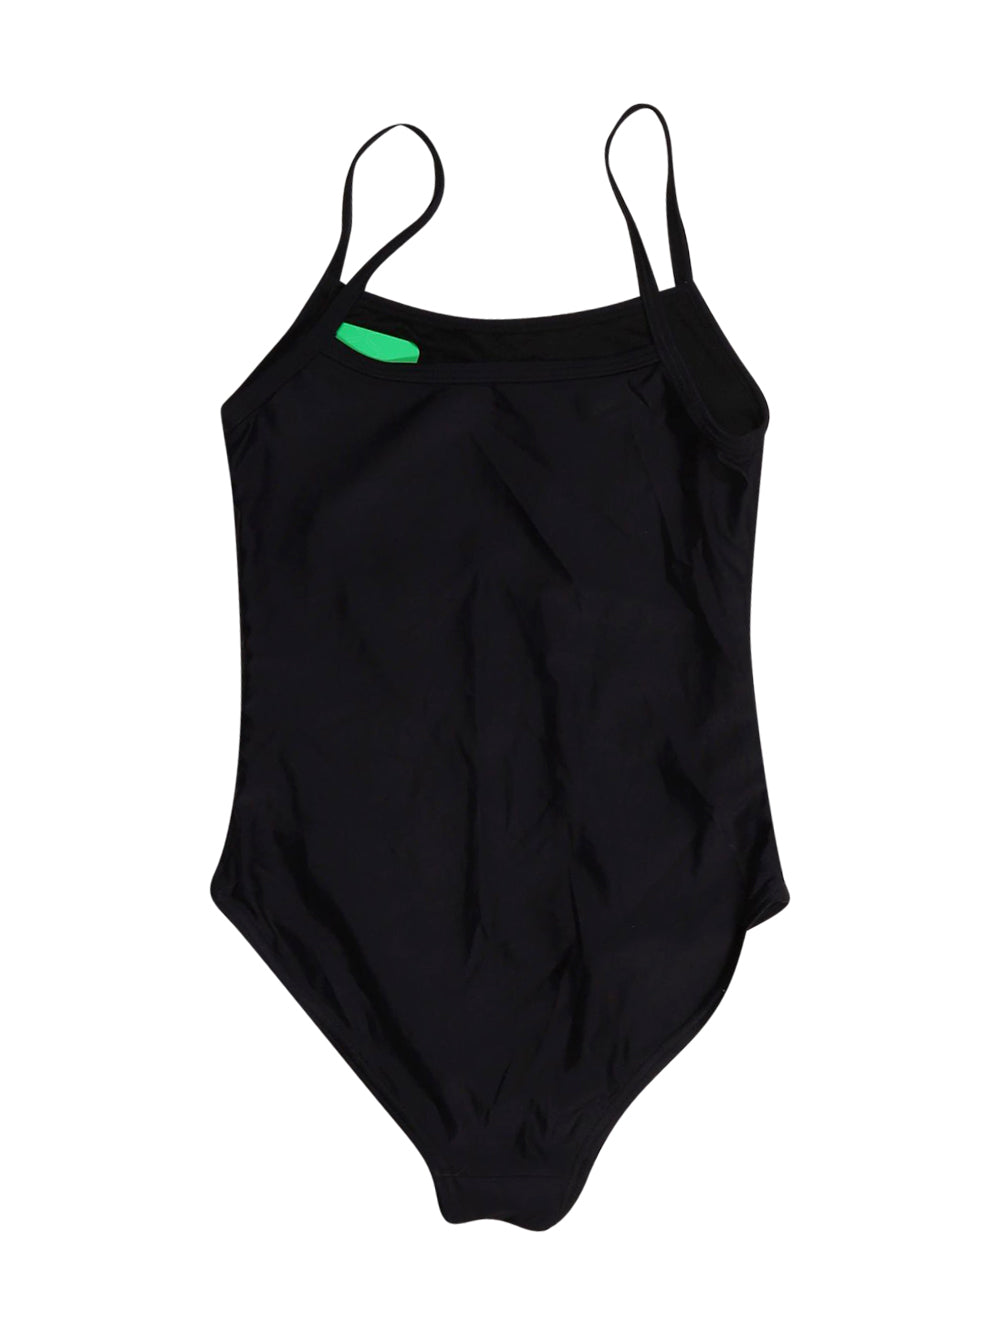 Front photo of Preloved energetics Black Girl's swimsuit - size 7-8 yrs